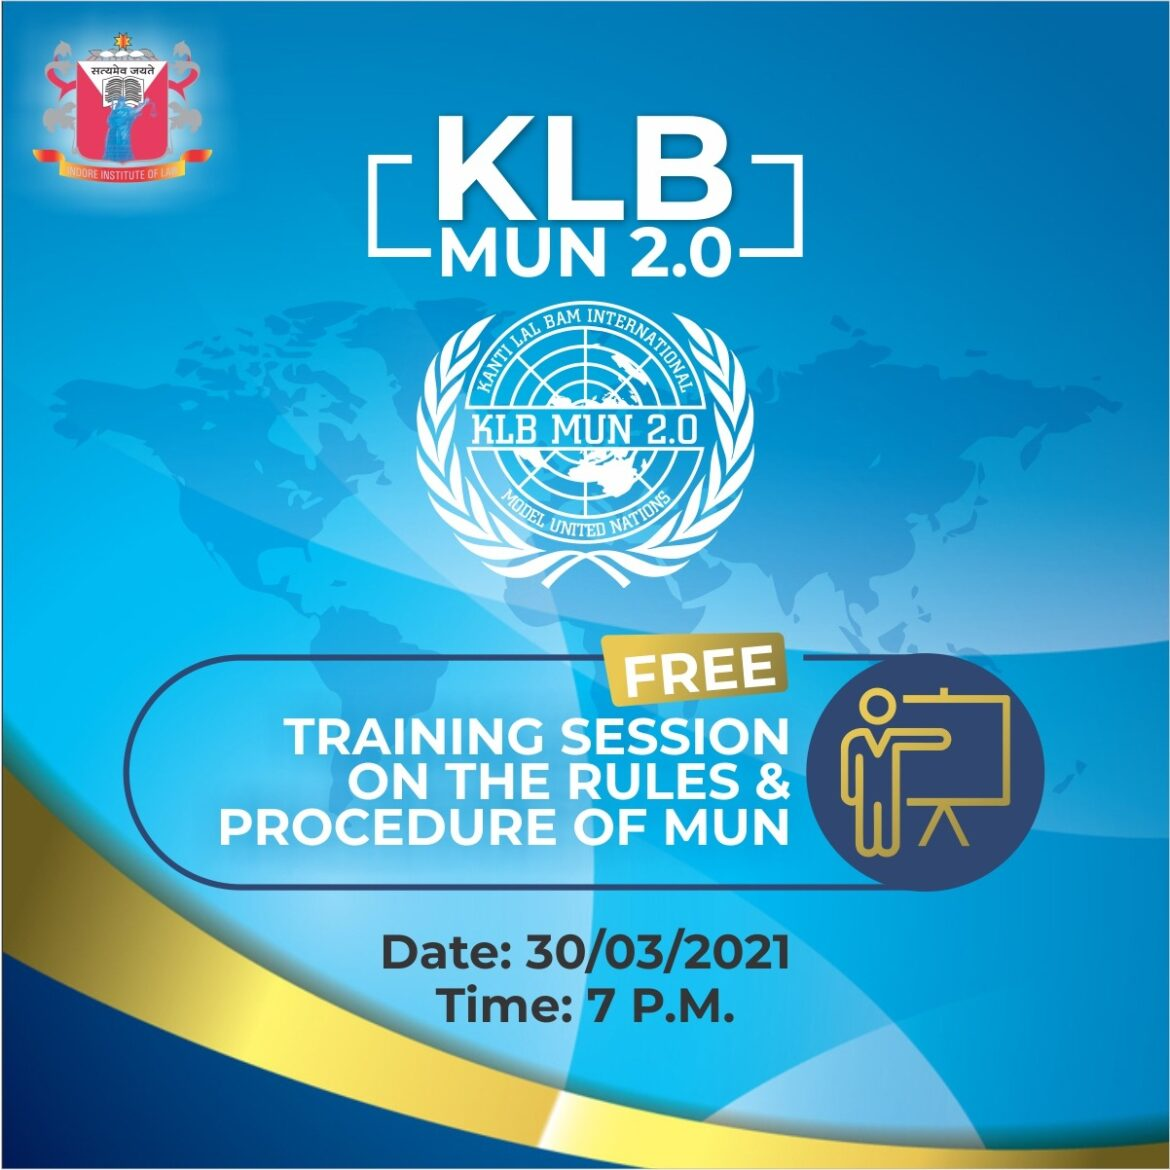 WEBINAR ON RULES & PROCEDURE OF MODEL UNITED NATIONS (30 MARCH 2021) Register by 29 March 2021